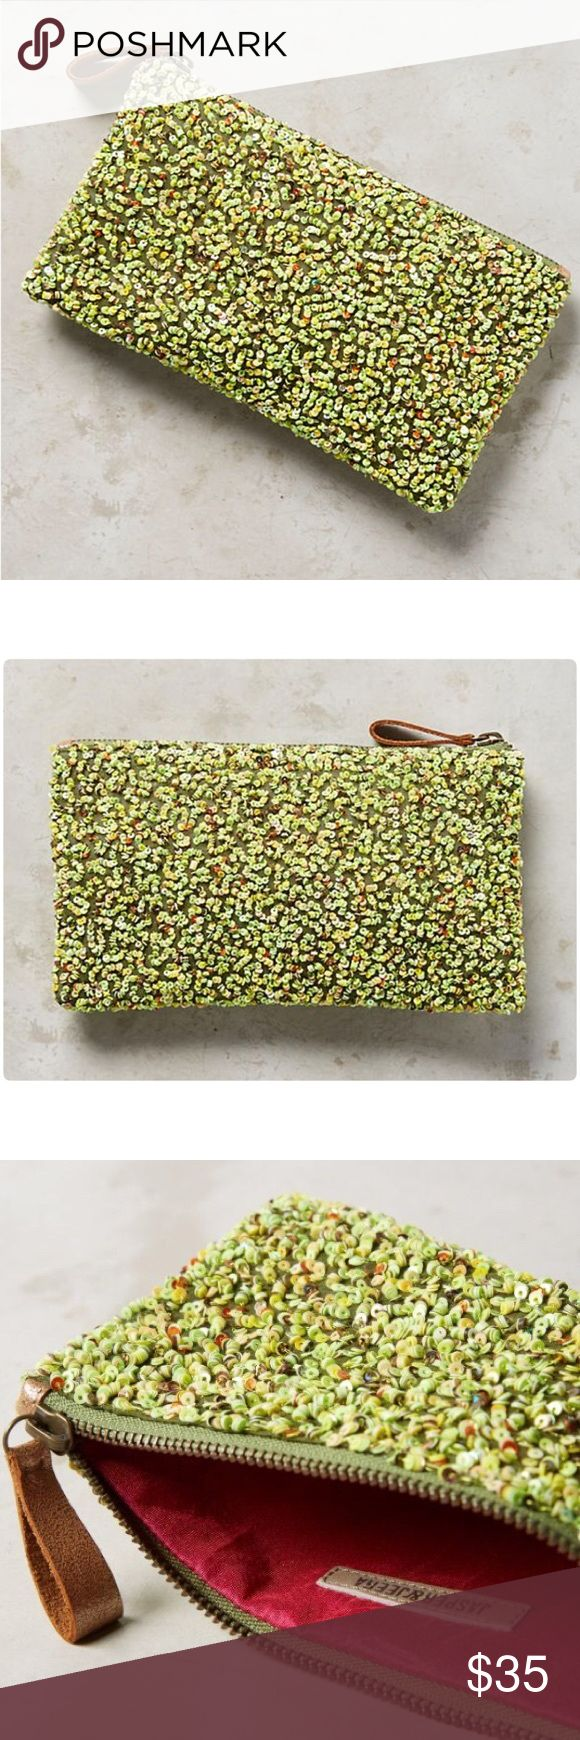 """Anthropologie Posy Sequined Clutch NWT Posy Sequined Clutch Jasper & Jeera Anthropologie❤️ Polyester, sequins Zip closure Imported  Dimensions 8""""H, 3""""W, 4""""D Anthropologie Bags Clutches & Wristlets"""